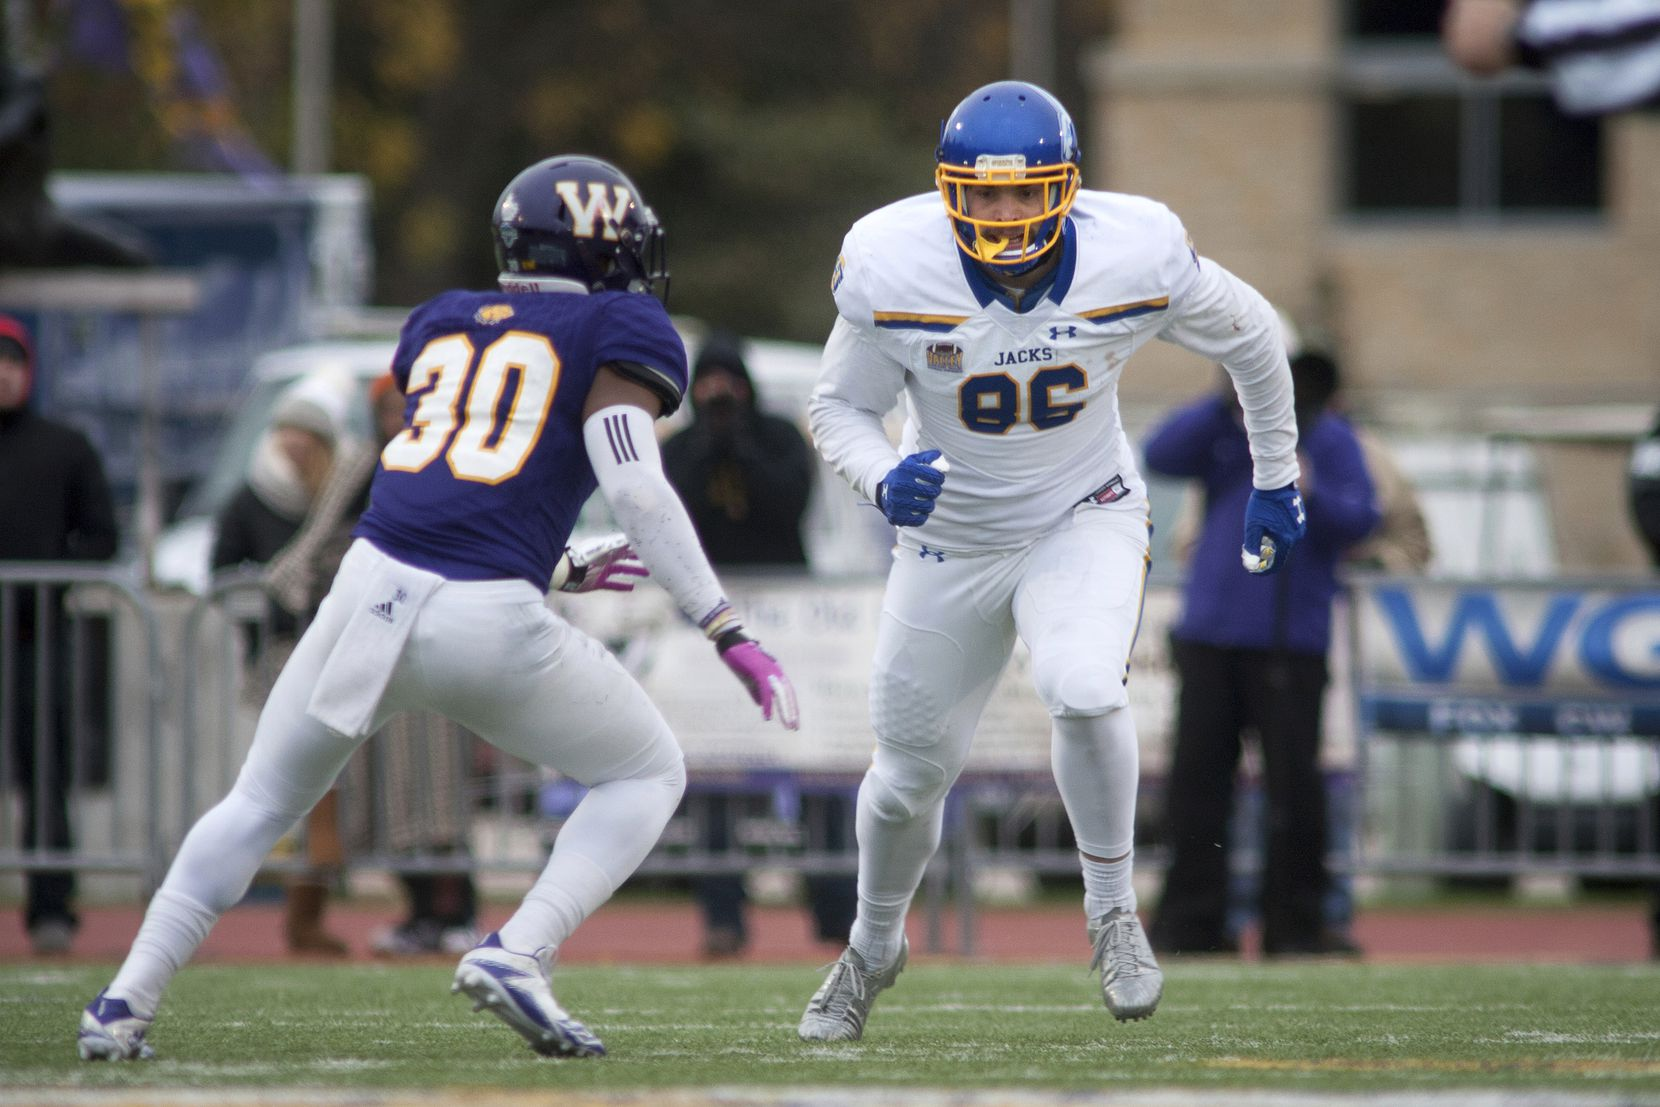 South Dakota State tight end Dallas Goedert is pictured during the second half of a game against Western Illinois on Saturday, Oct. 28, 2017, in Macomb, Ill. (AP Photo/Daryl Wilson)